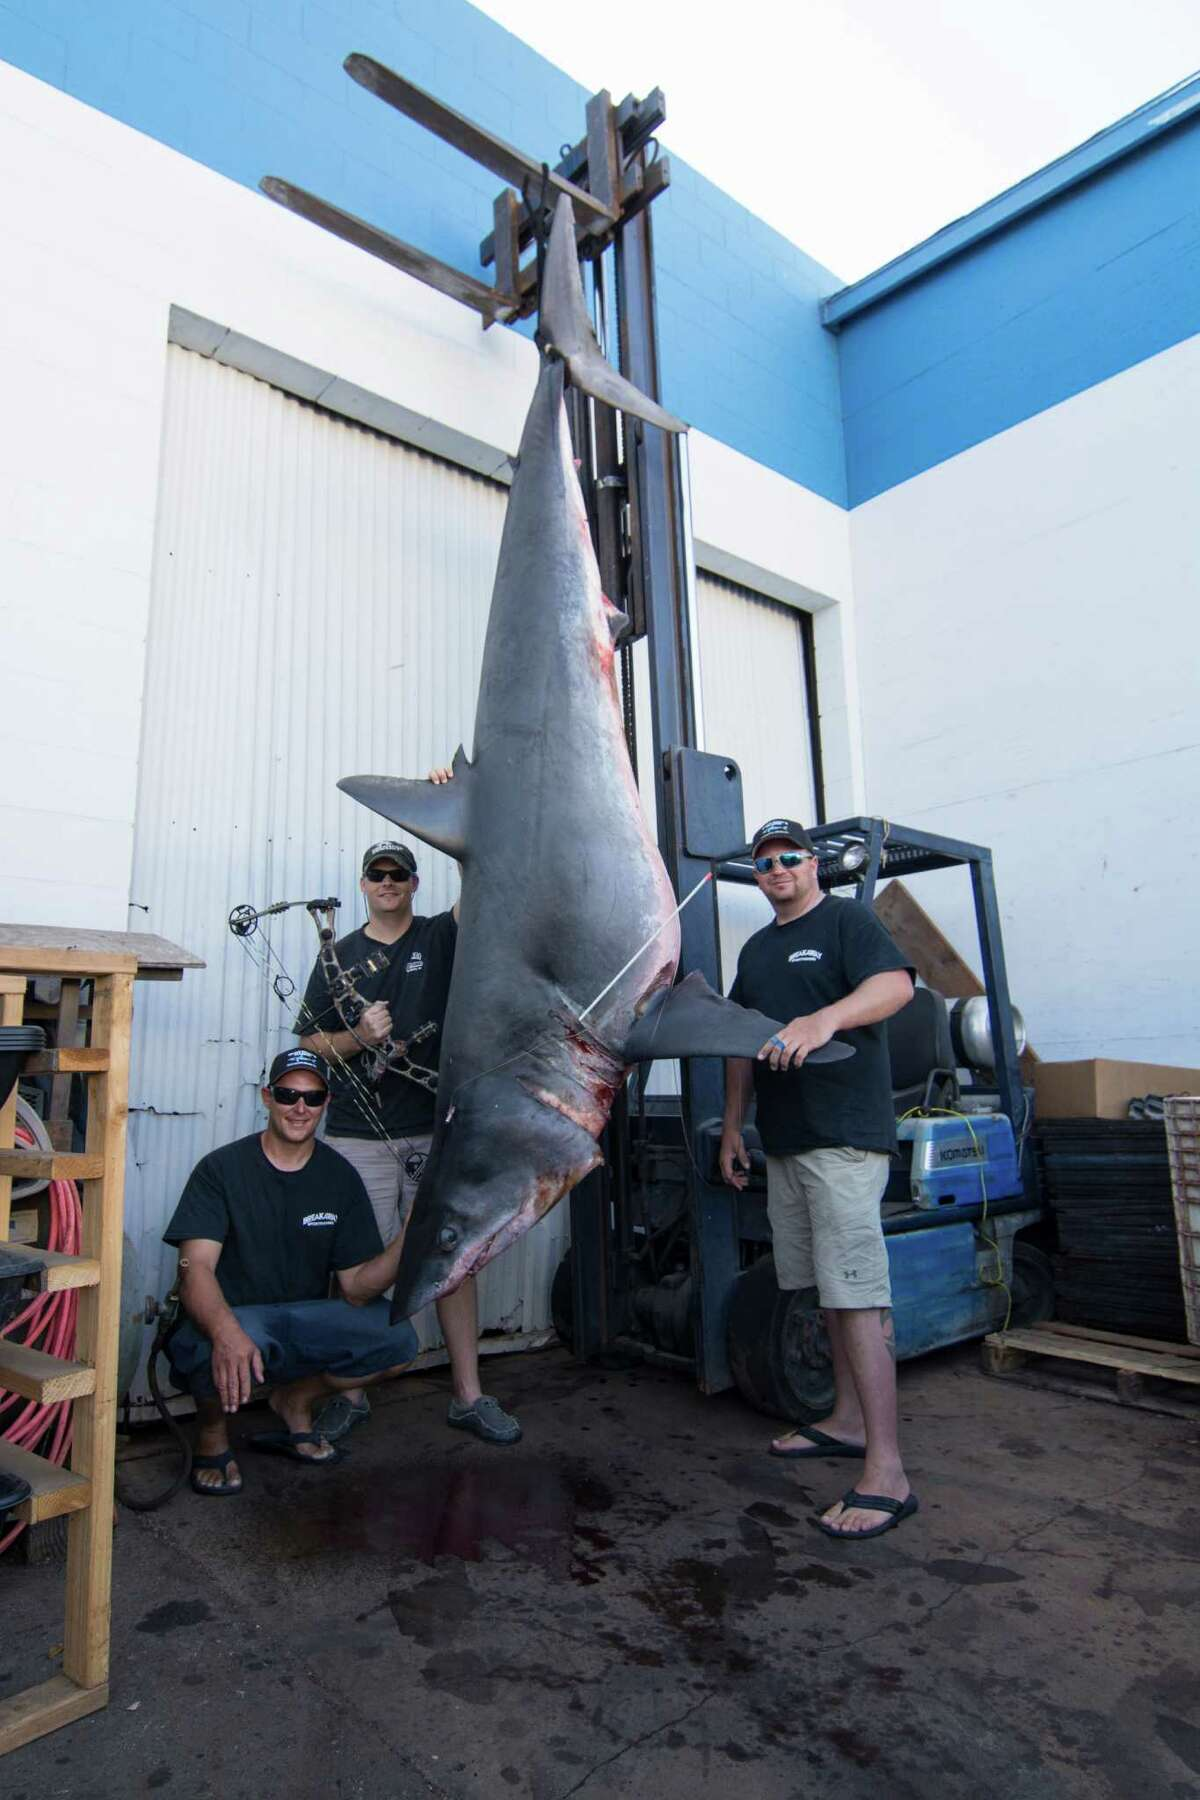 TV host Jeff Thomason, of Weatherford, Texas, landed a world bowfishing record for Mako shark August 12 off the coast of Huntington Beach, California. The shark, which weighed 809.5 pounds and stretched 11 feet, beat the previous world bowfishing record for Mako by about 300 pounds, according to the Bowfishing Association of America.